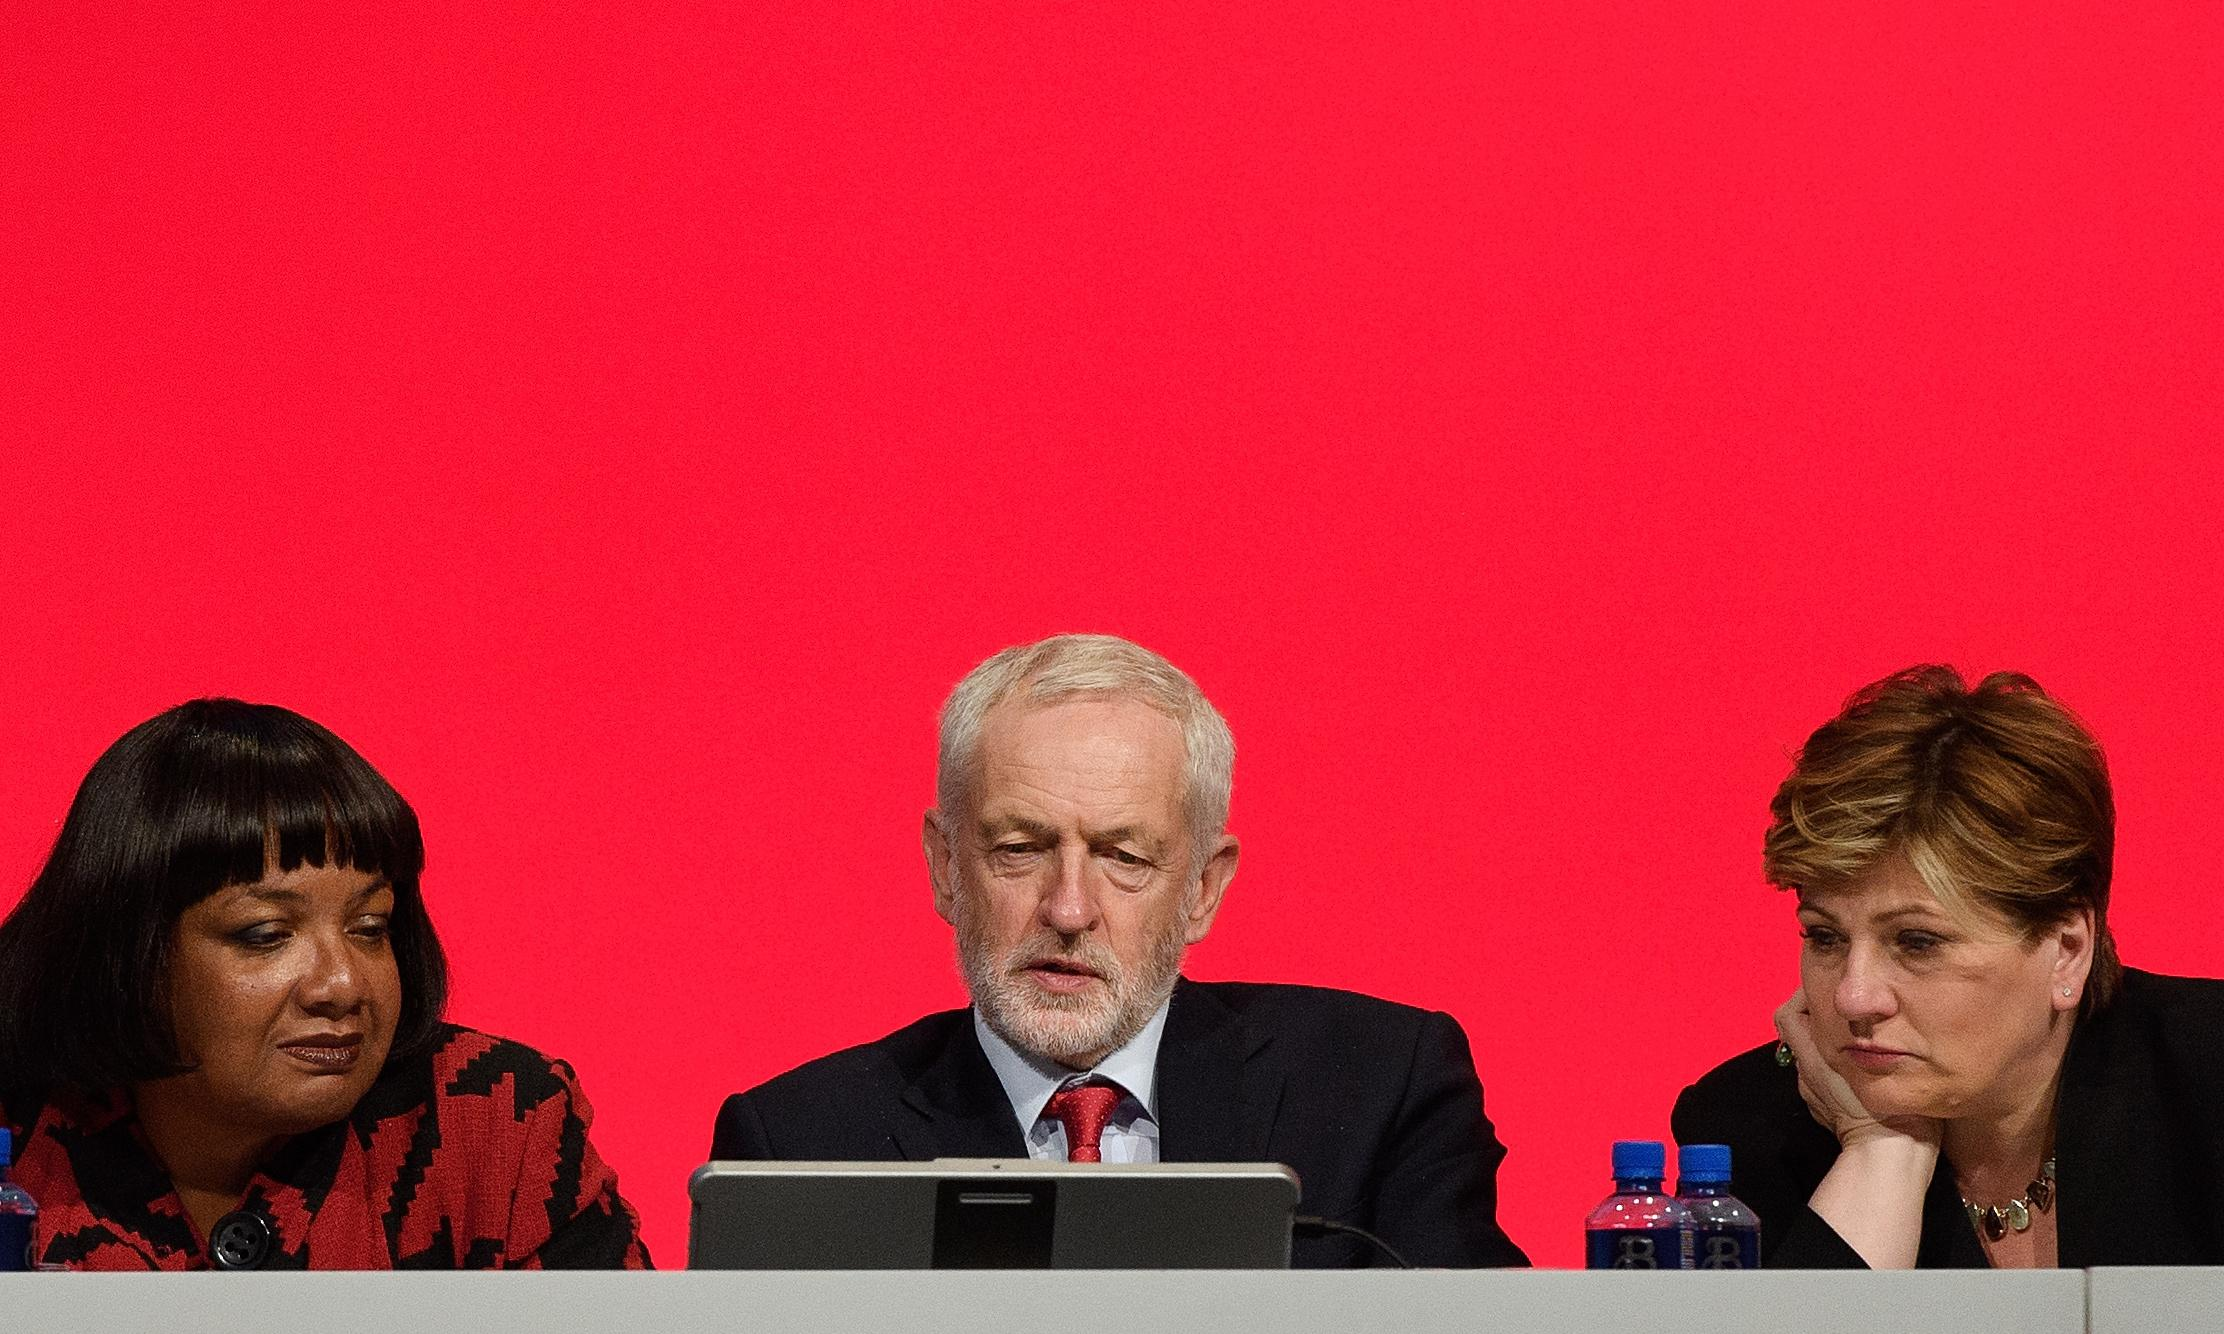 Will Corbyn's Brexit referendum strategy work? Our panel responds